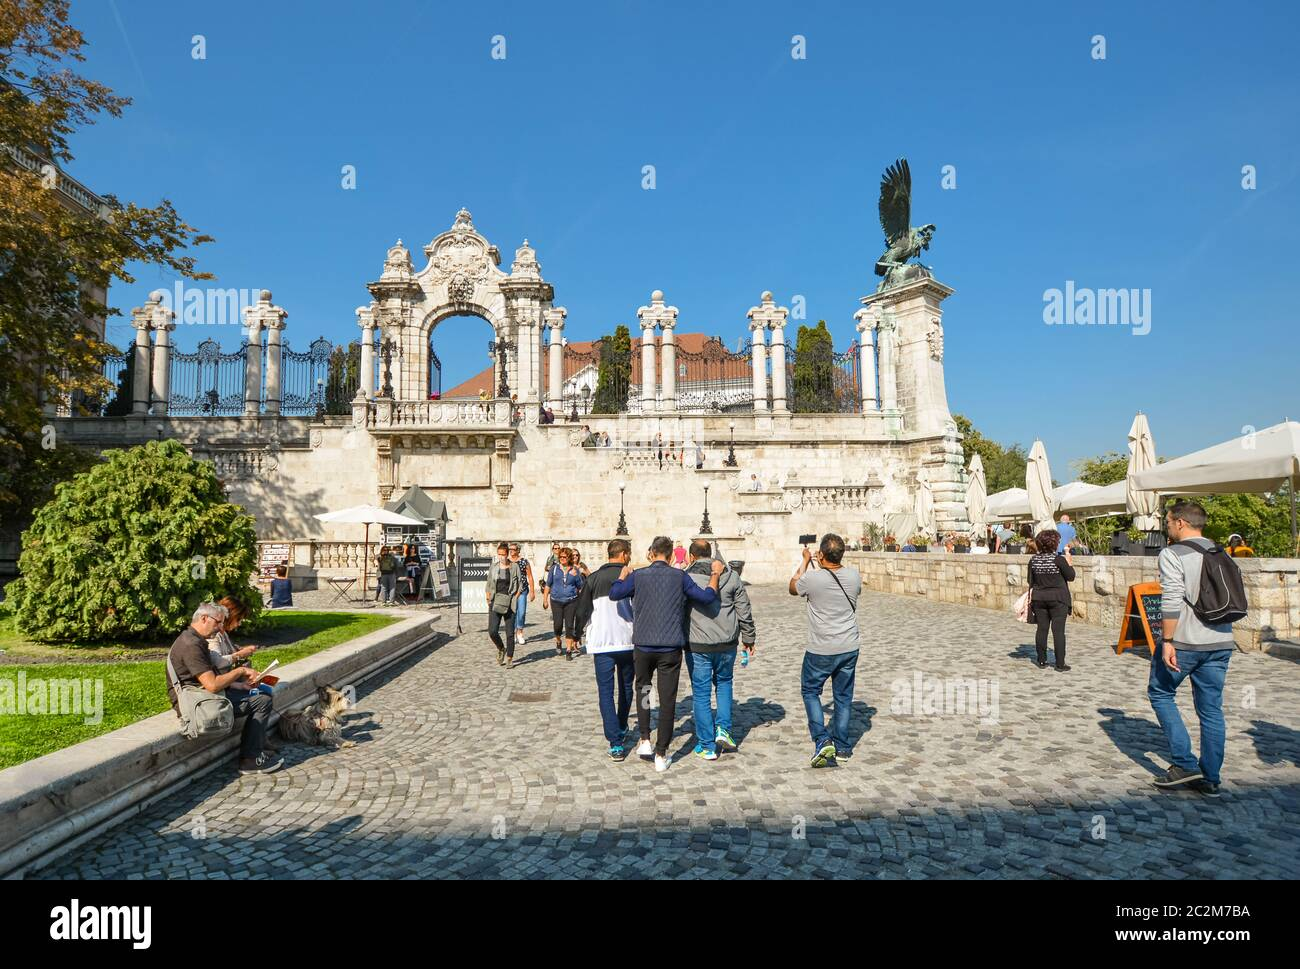 Tourists walk together and enjoy a sunny day in early autumn on the terrace overlooking the city at the Buda Castle Hill District in Budapest Hungary Stock Photo